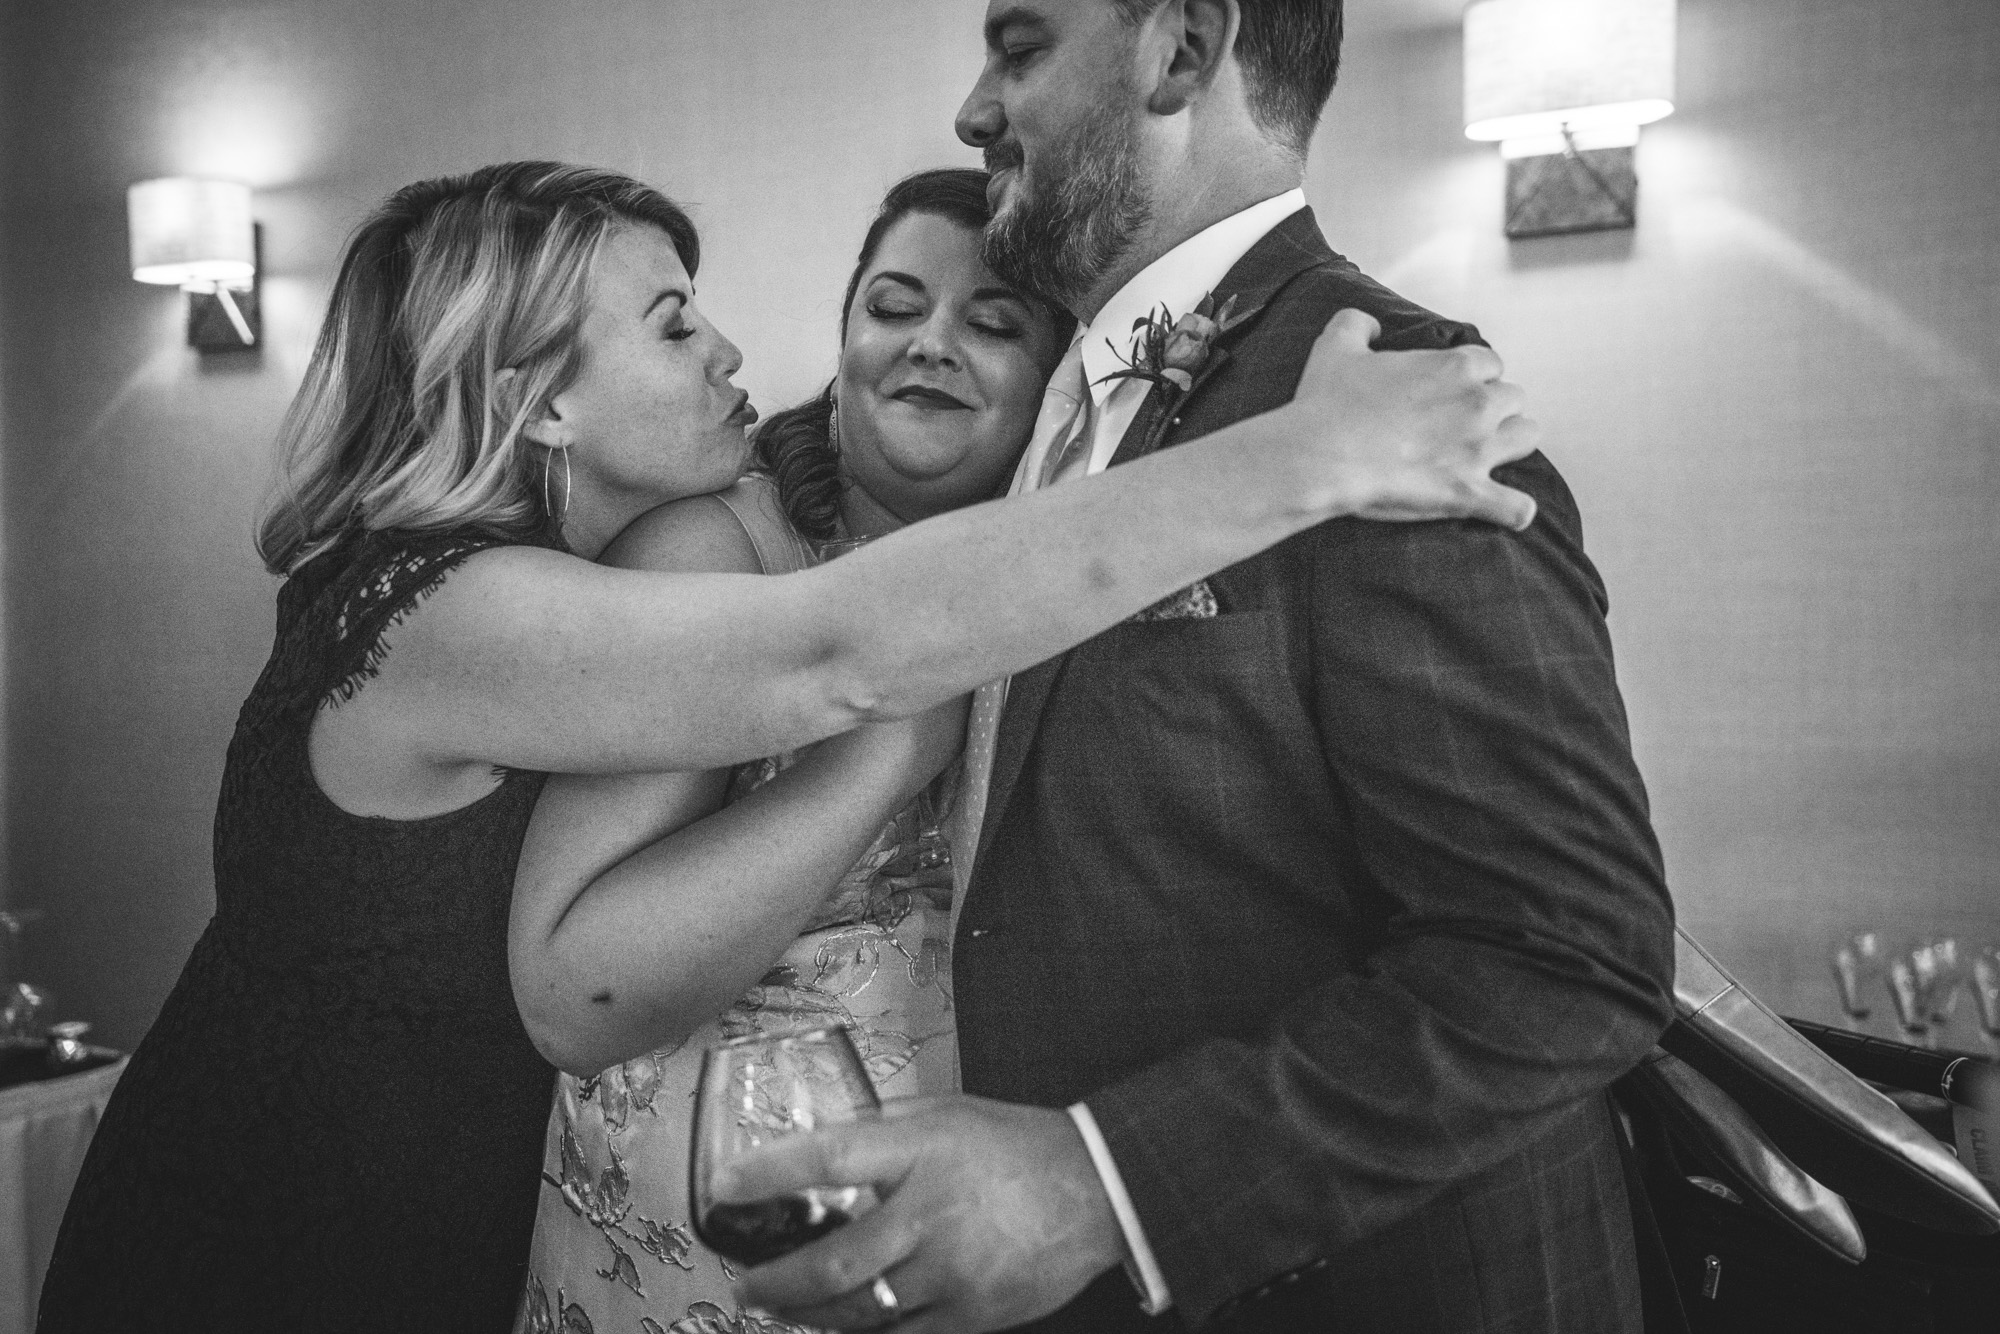 Black and white photograph of the maid of honor at a wedding reception hugging both the bride and groom while making a funny kissy face